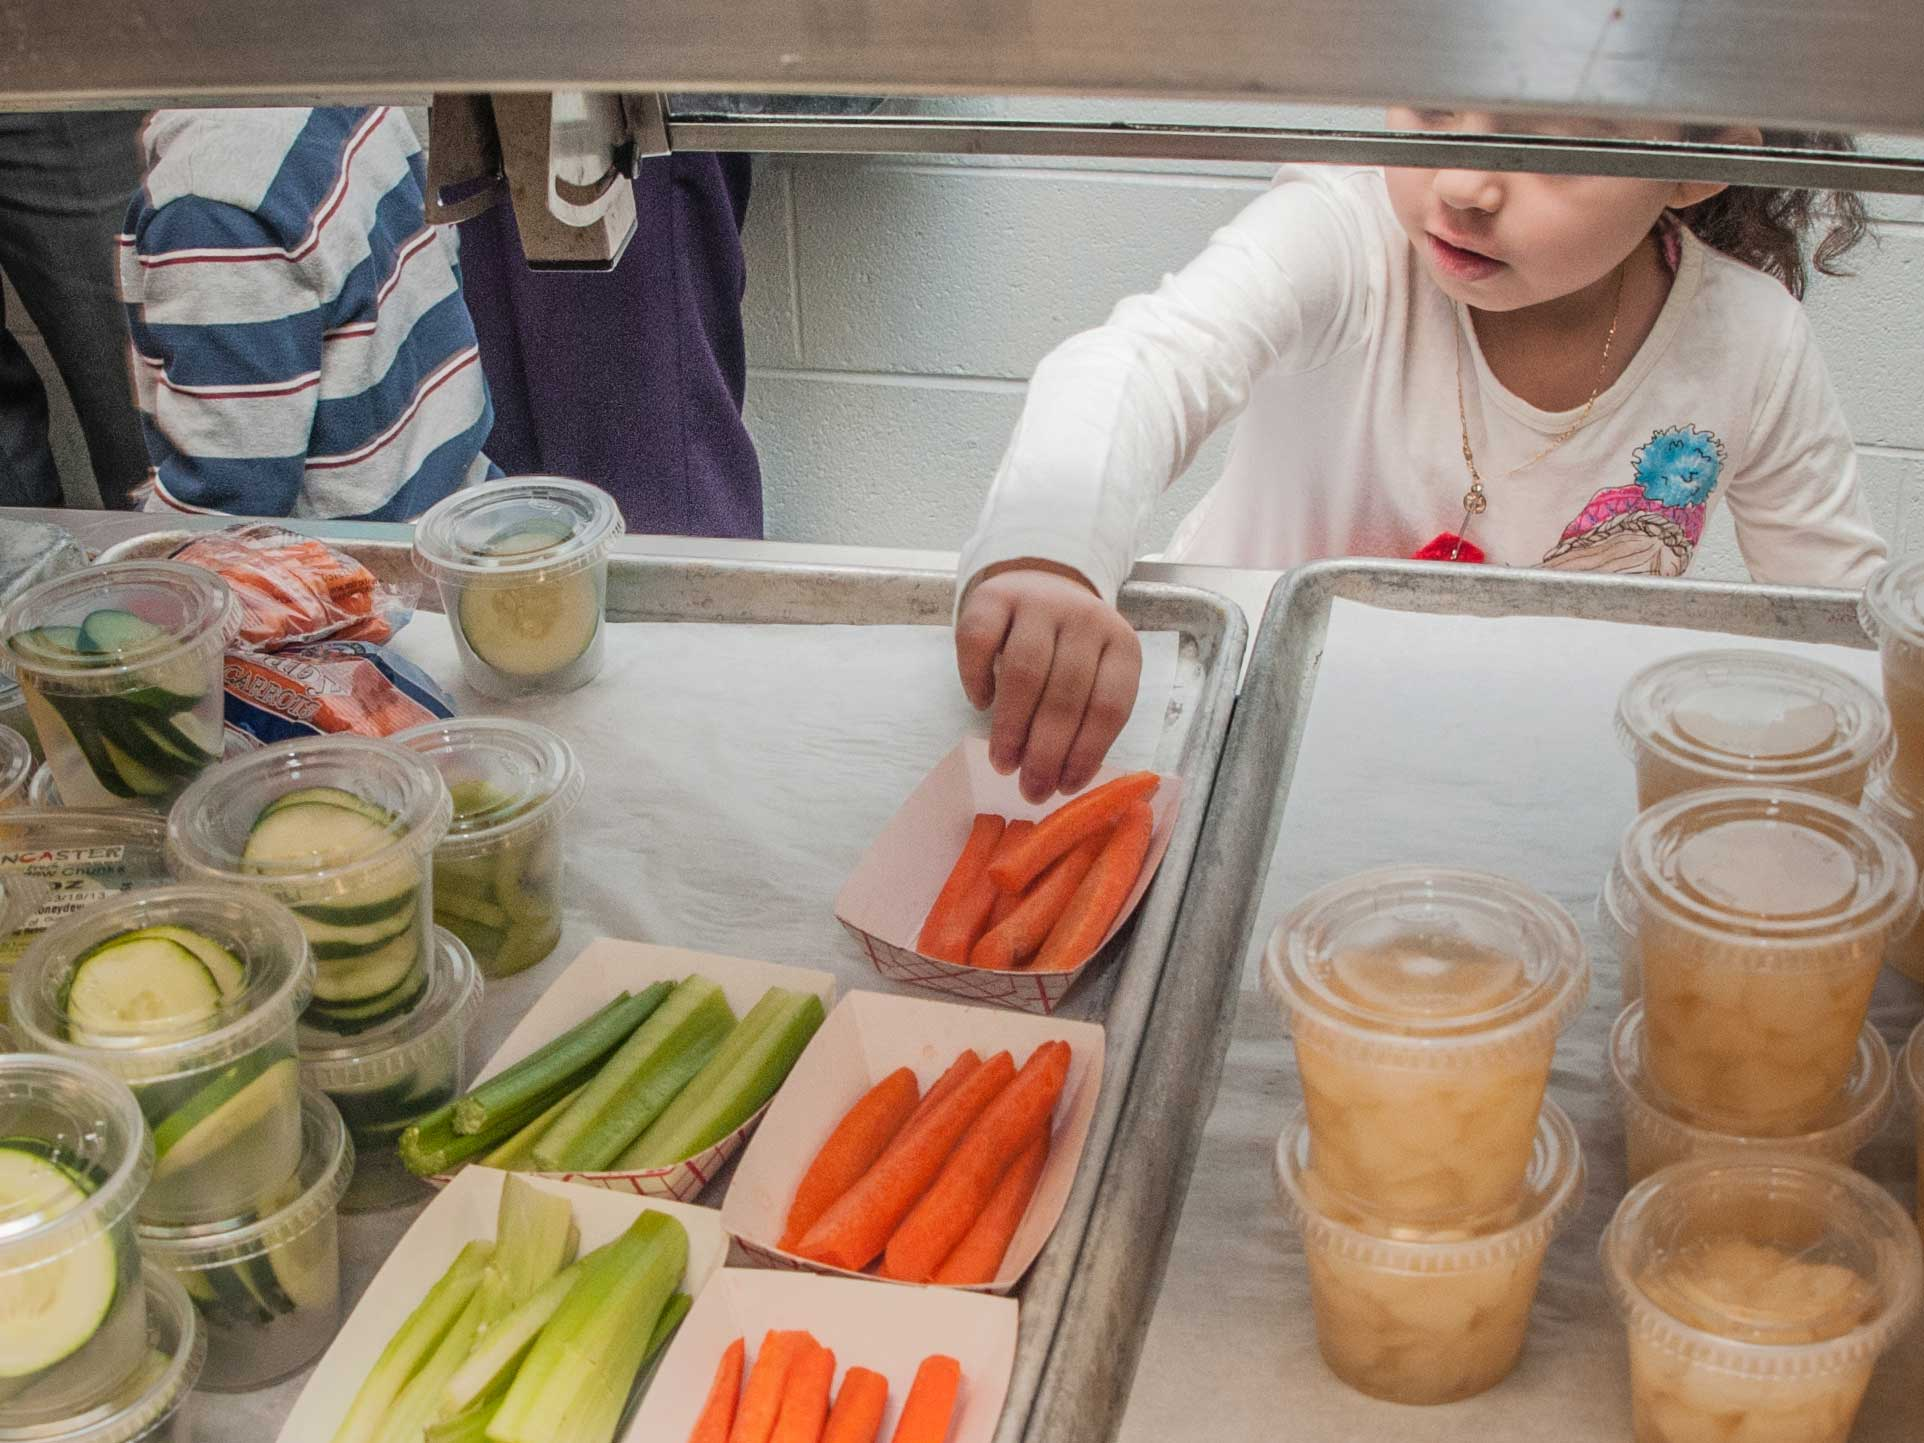 New York City Students Will Finally Get Free School Lunch